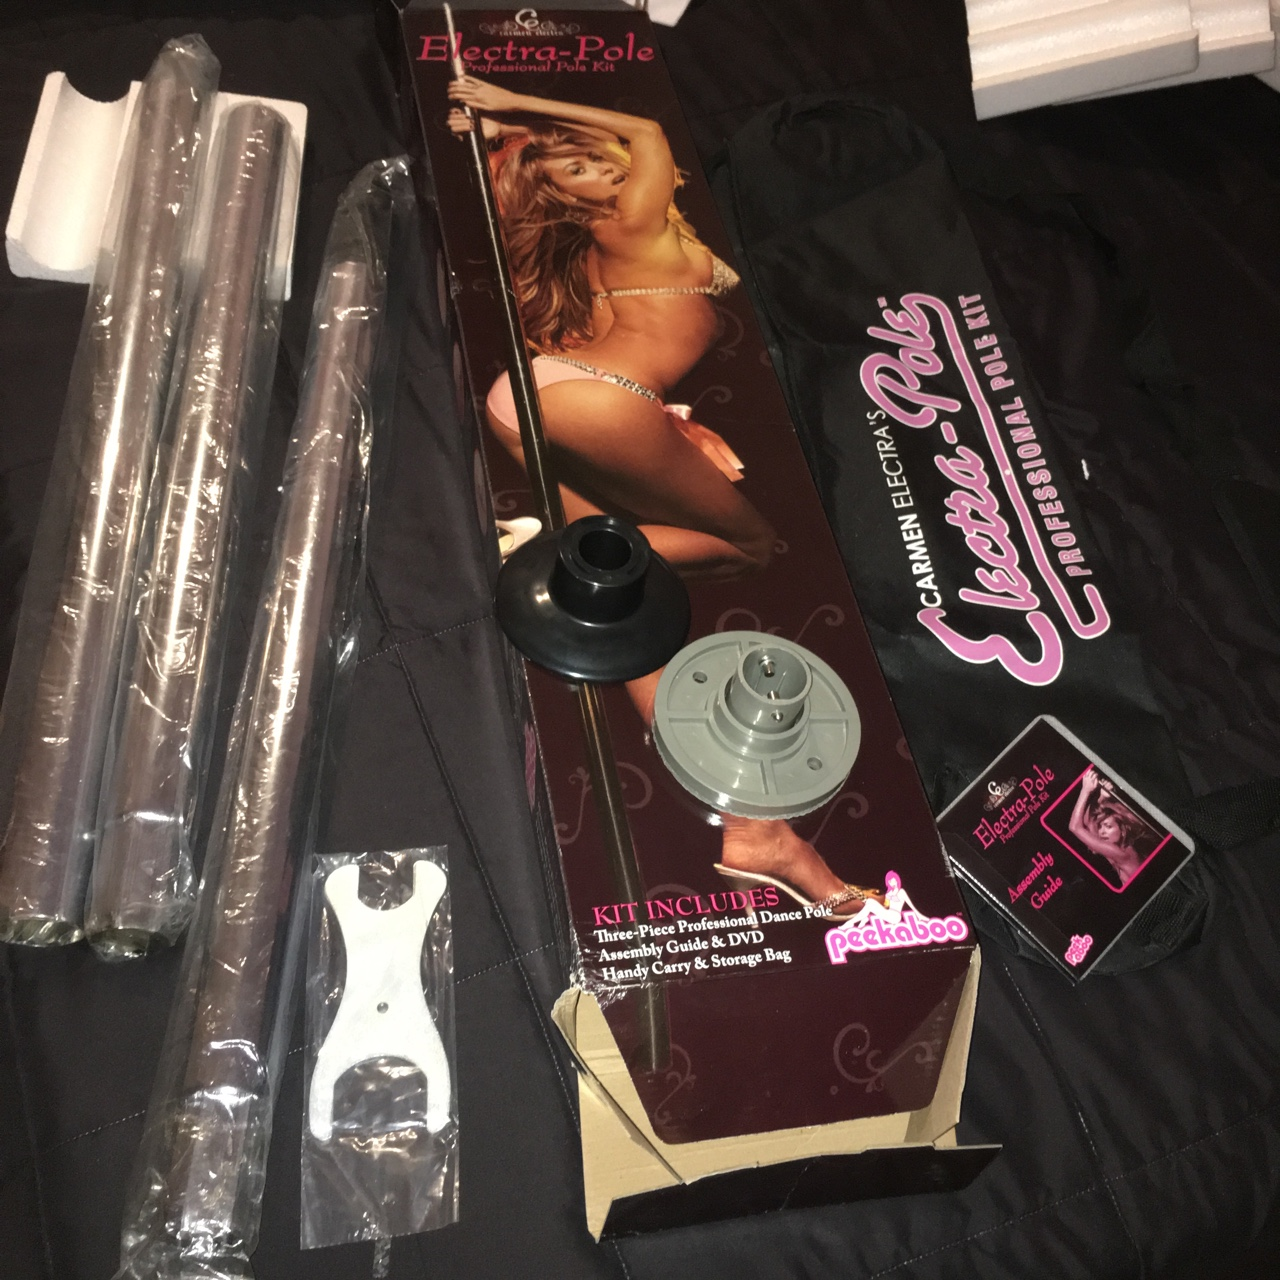 Carmen Electra Pole Stripper Chrome Professional Depop